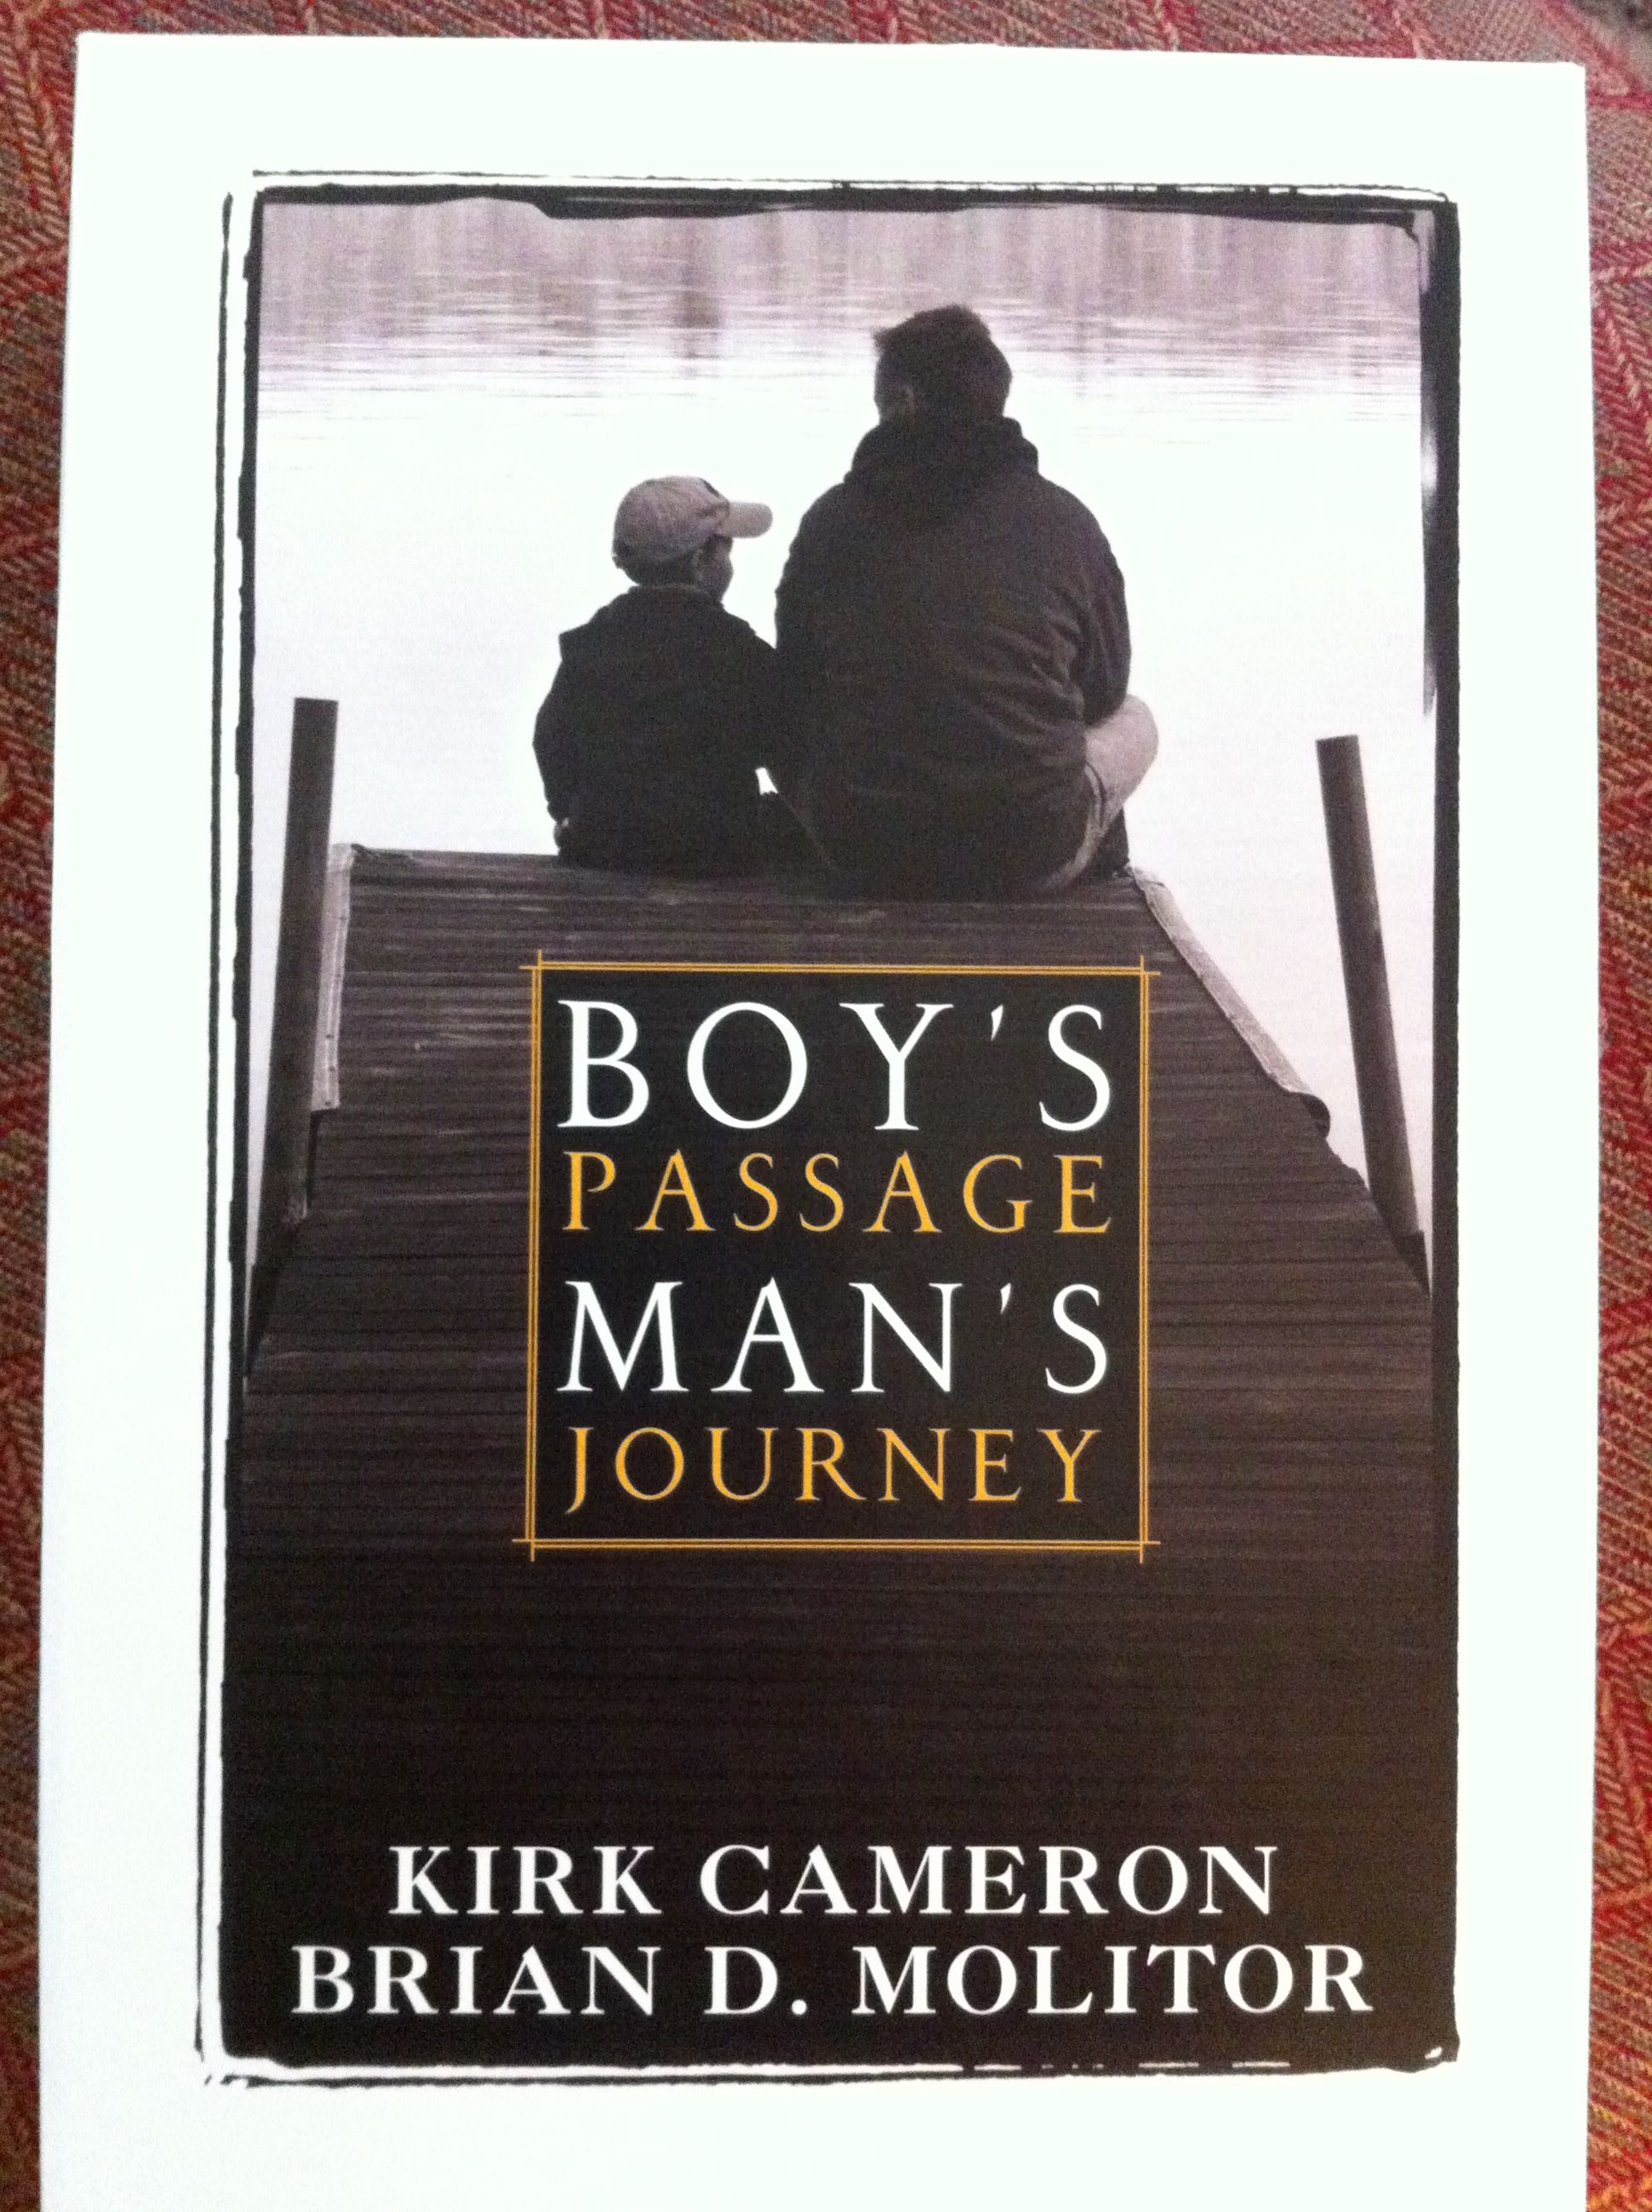 A MUST READ  for parents/leaders striving to raise/mentor strong, Godly men. Excellent material! Gives guidelines for the transition from boy to man, and how to affirm and develop their manhood along the way. 5 DVD's, a 240 page book, and a 64 pg. study guide is included in the boxed curriculum. Great for small study groups, or Sunday school classes.